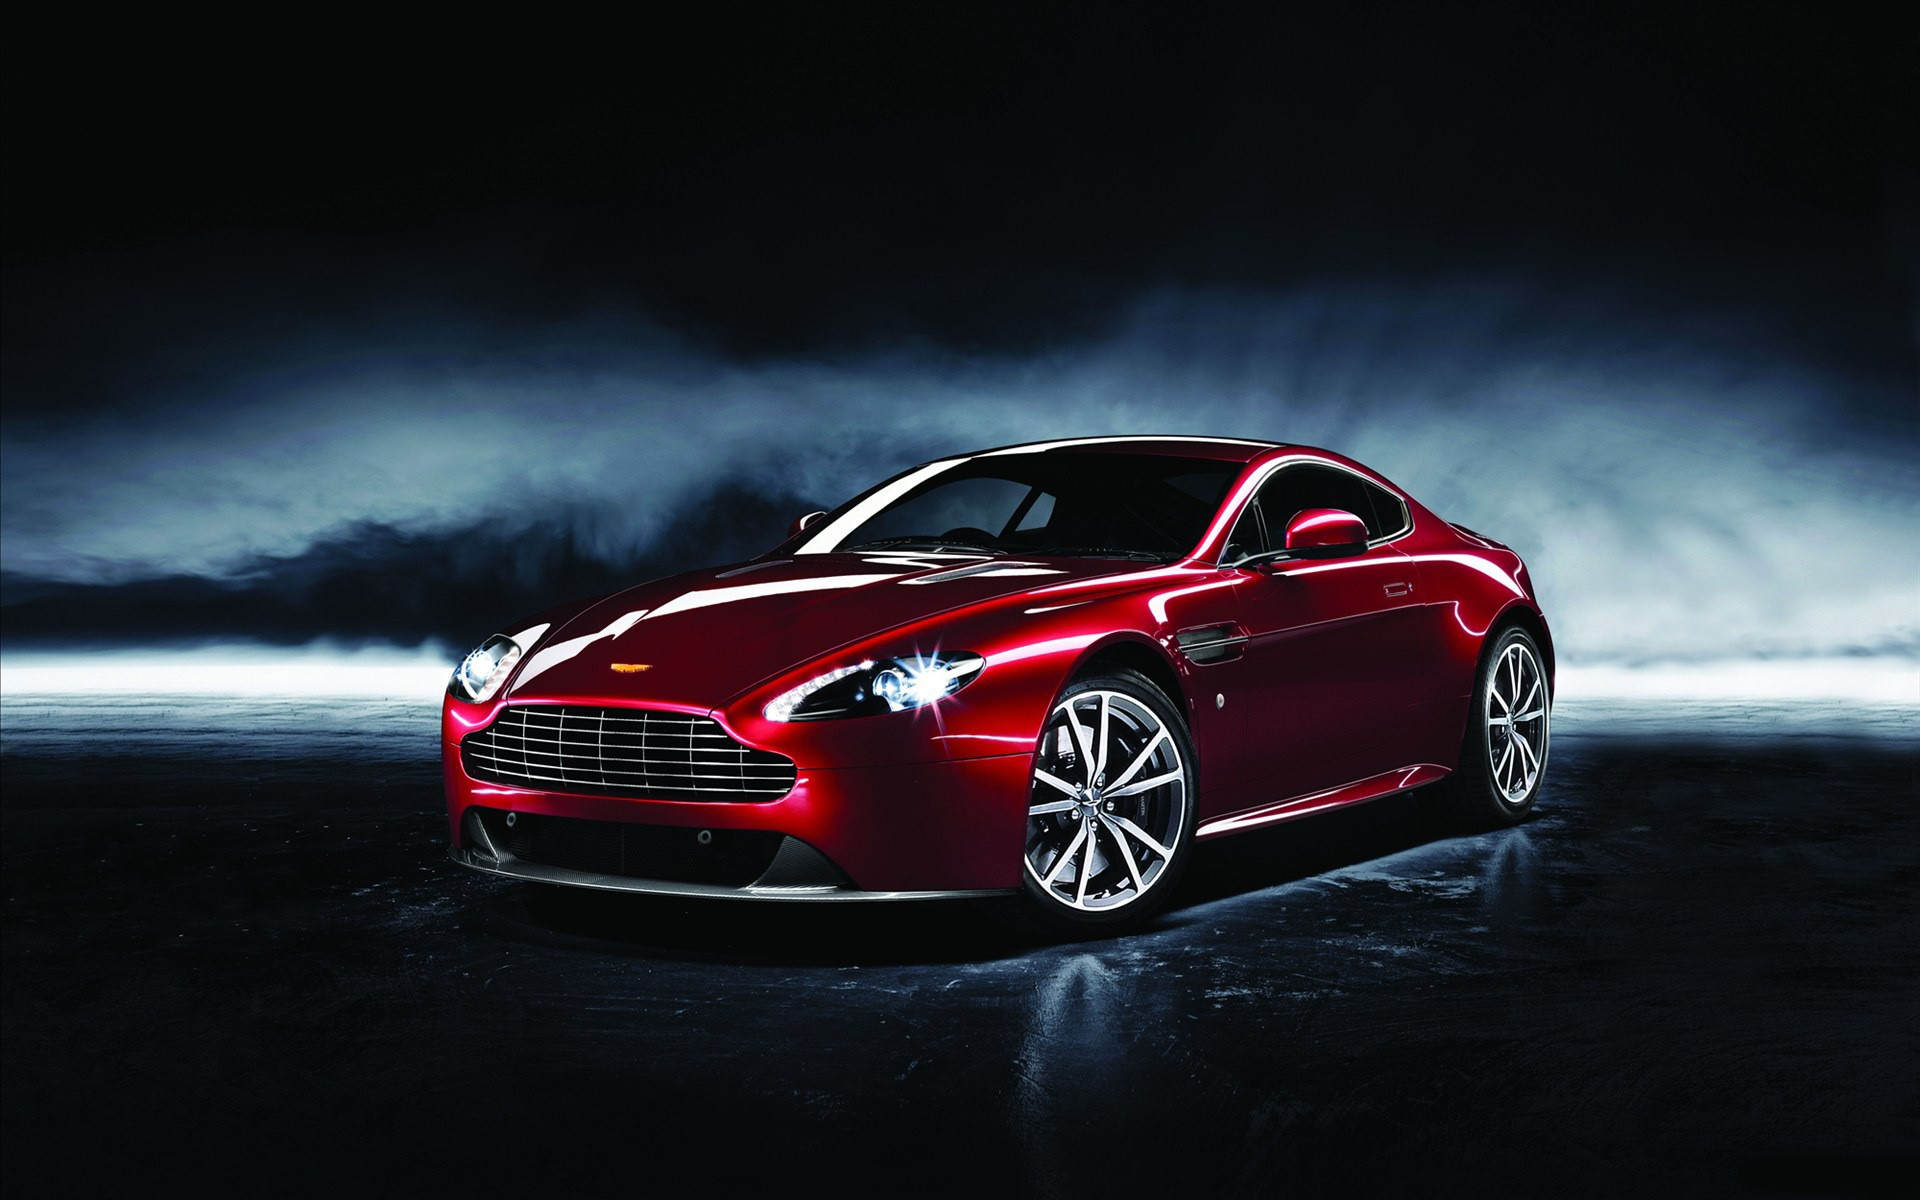 aston martin dragon 88 limited edition wallpaper hd car